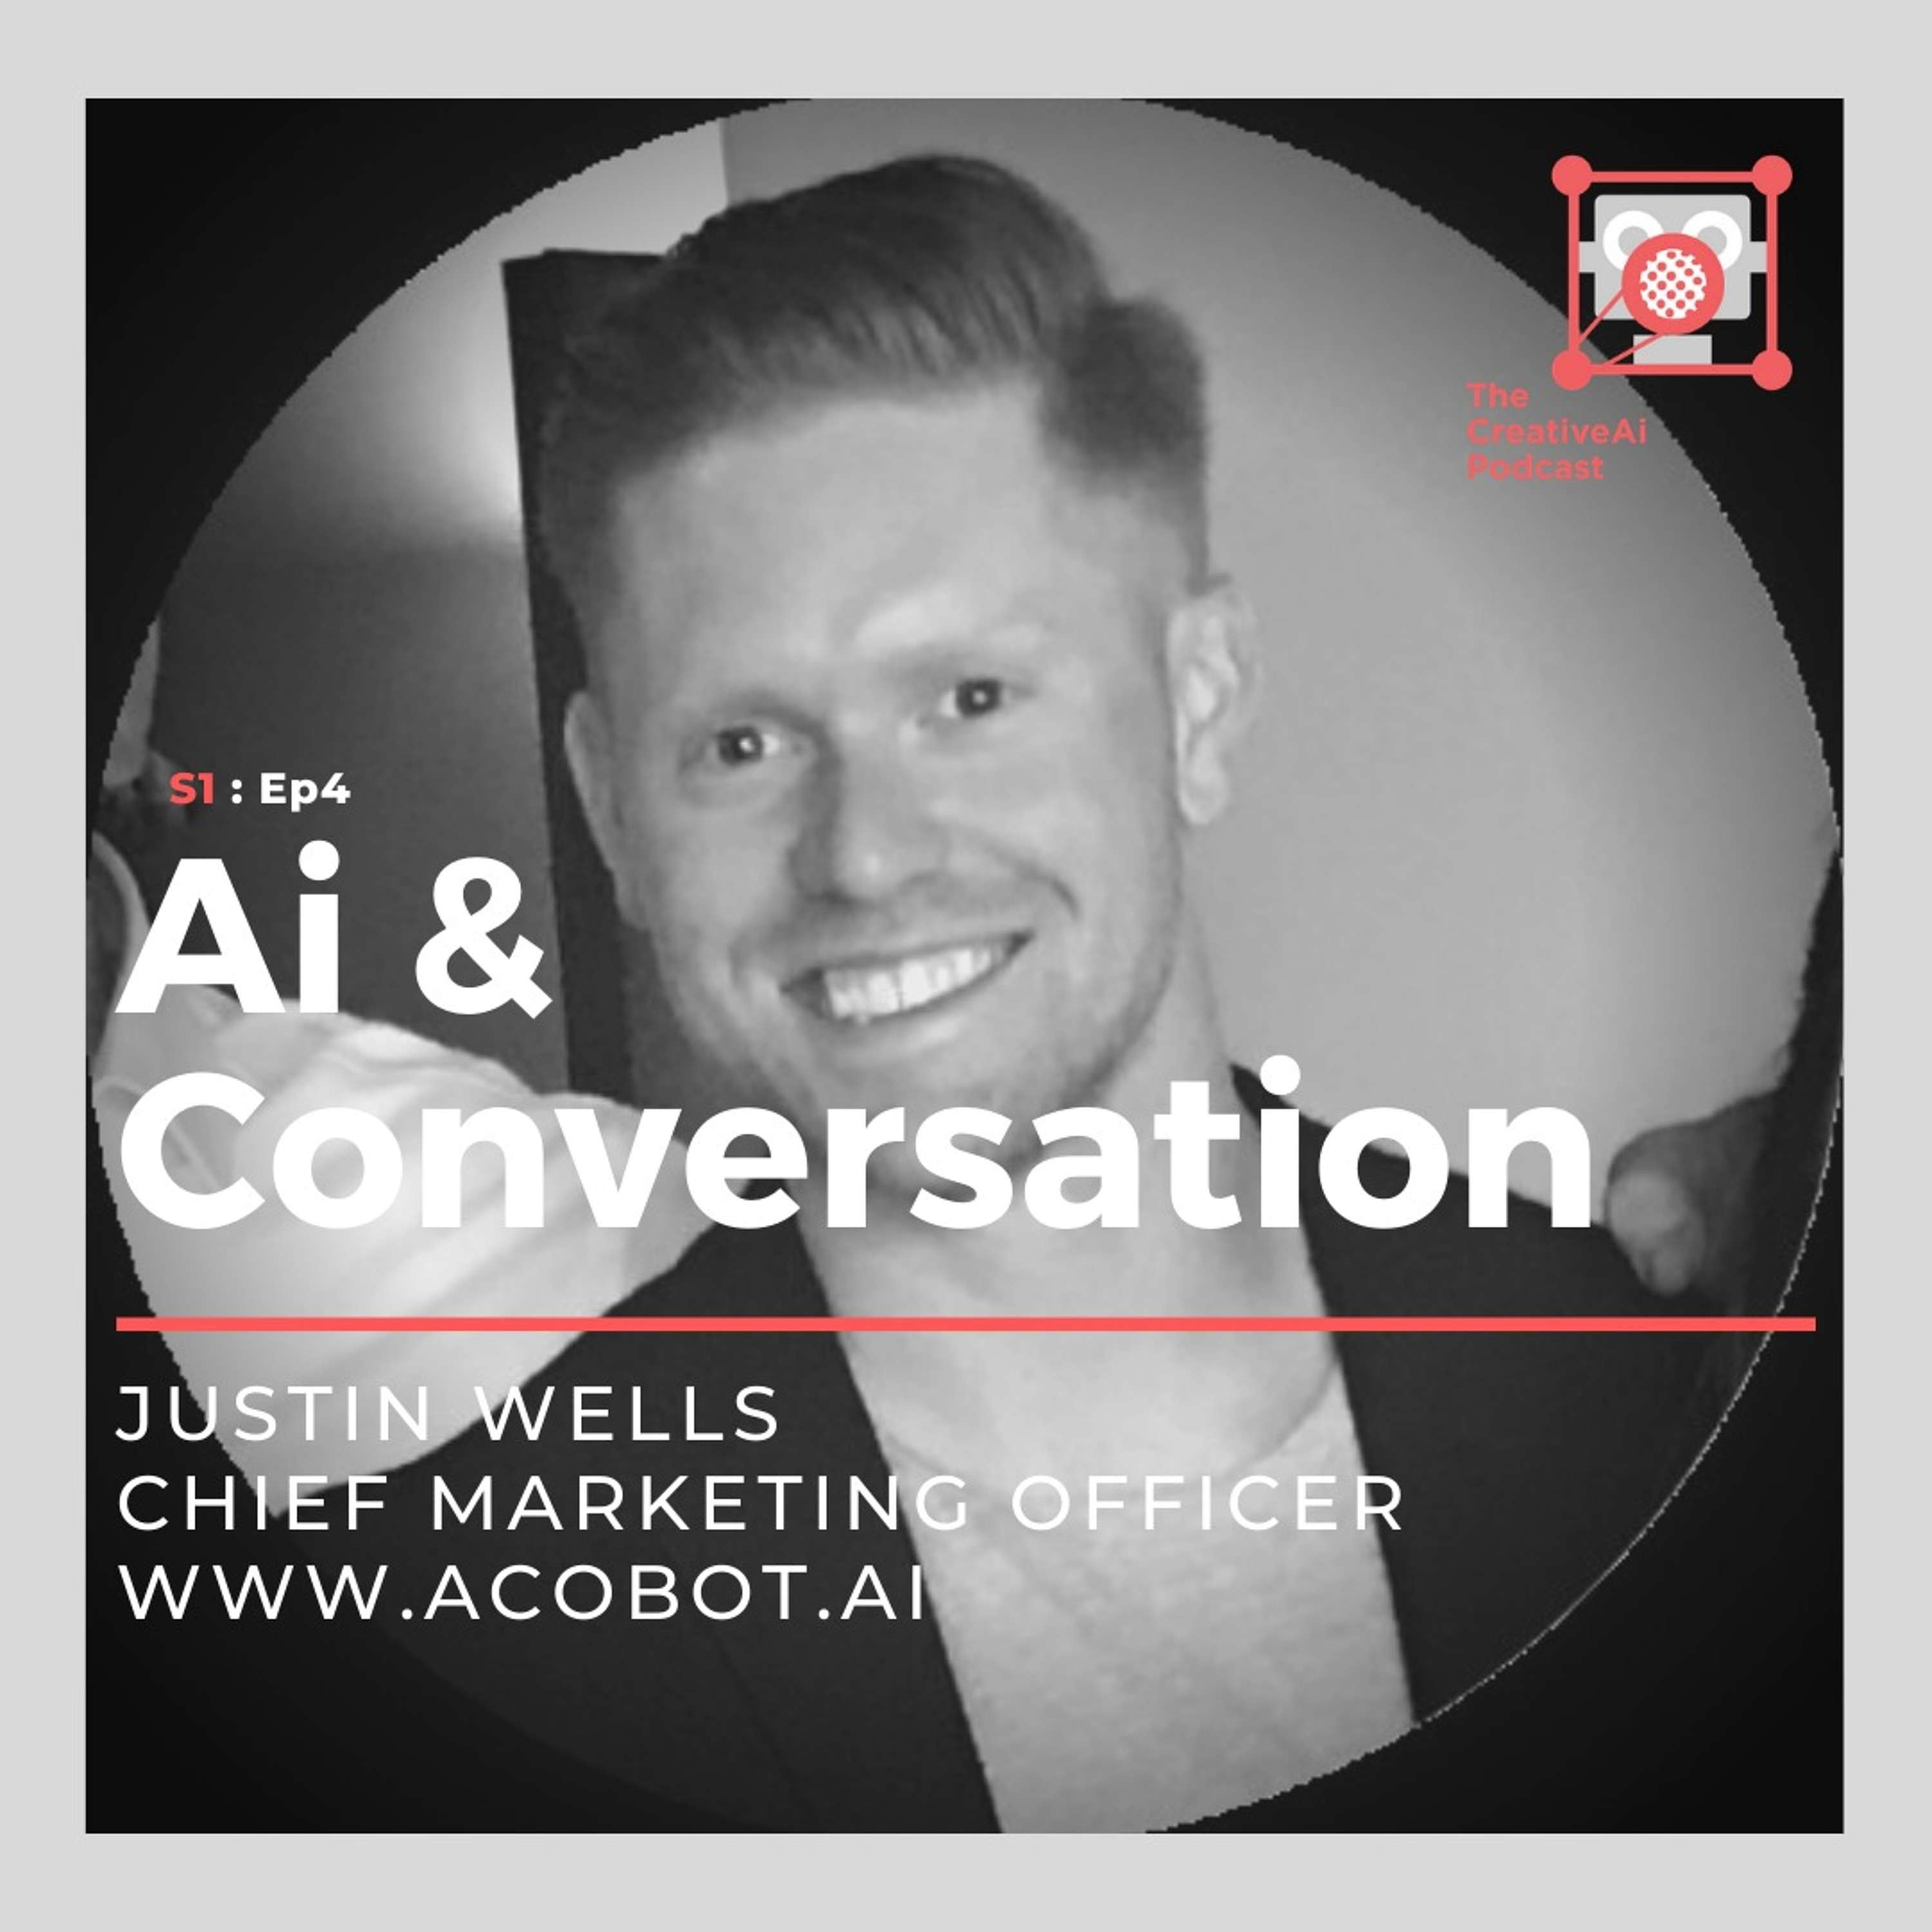 S1 : Ep4 - Ai & Conversation with Justin Wells of Acobot.ai